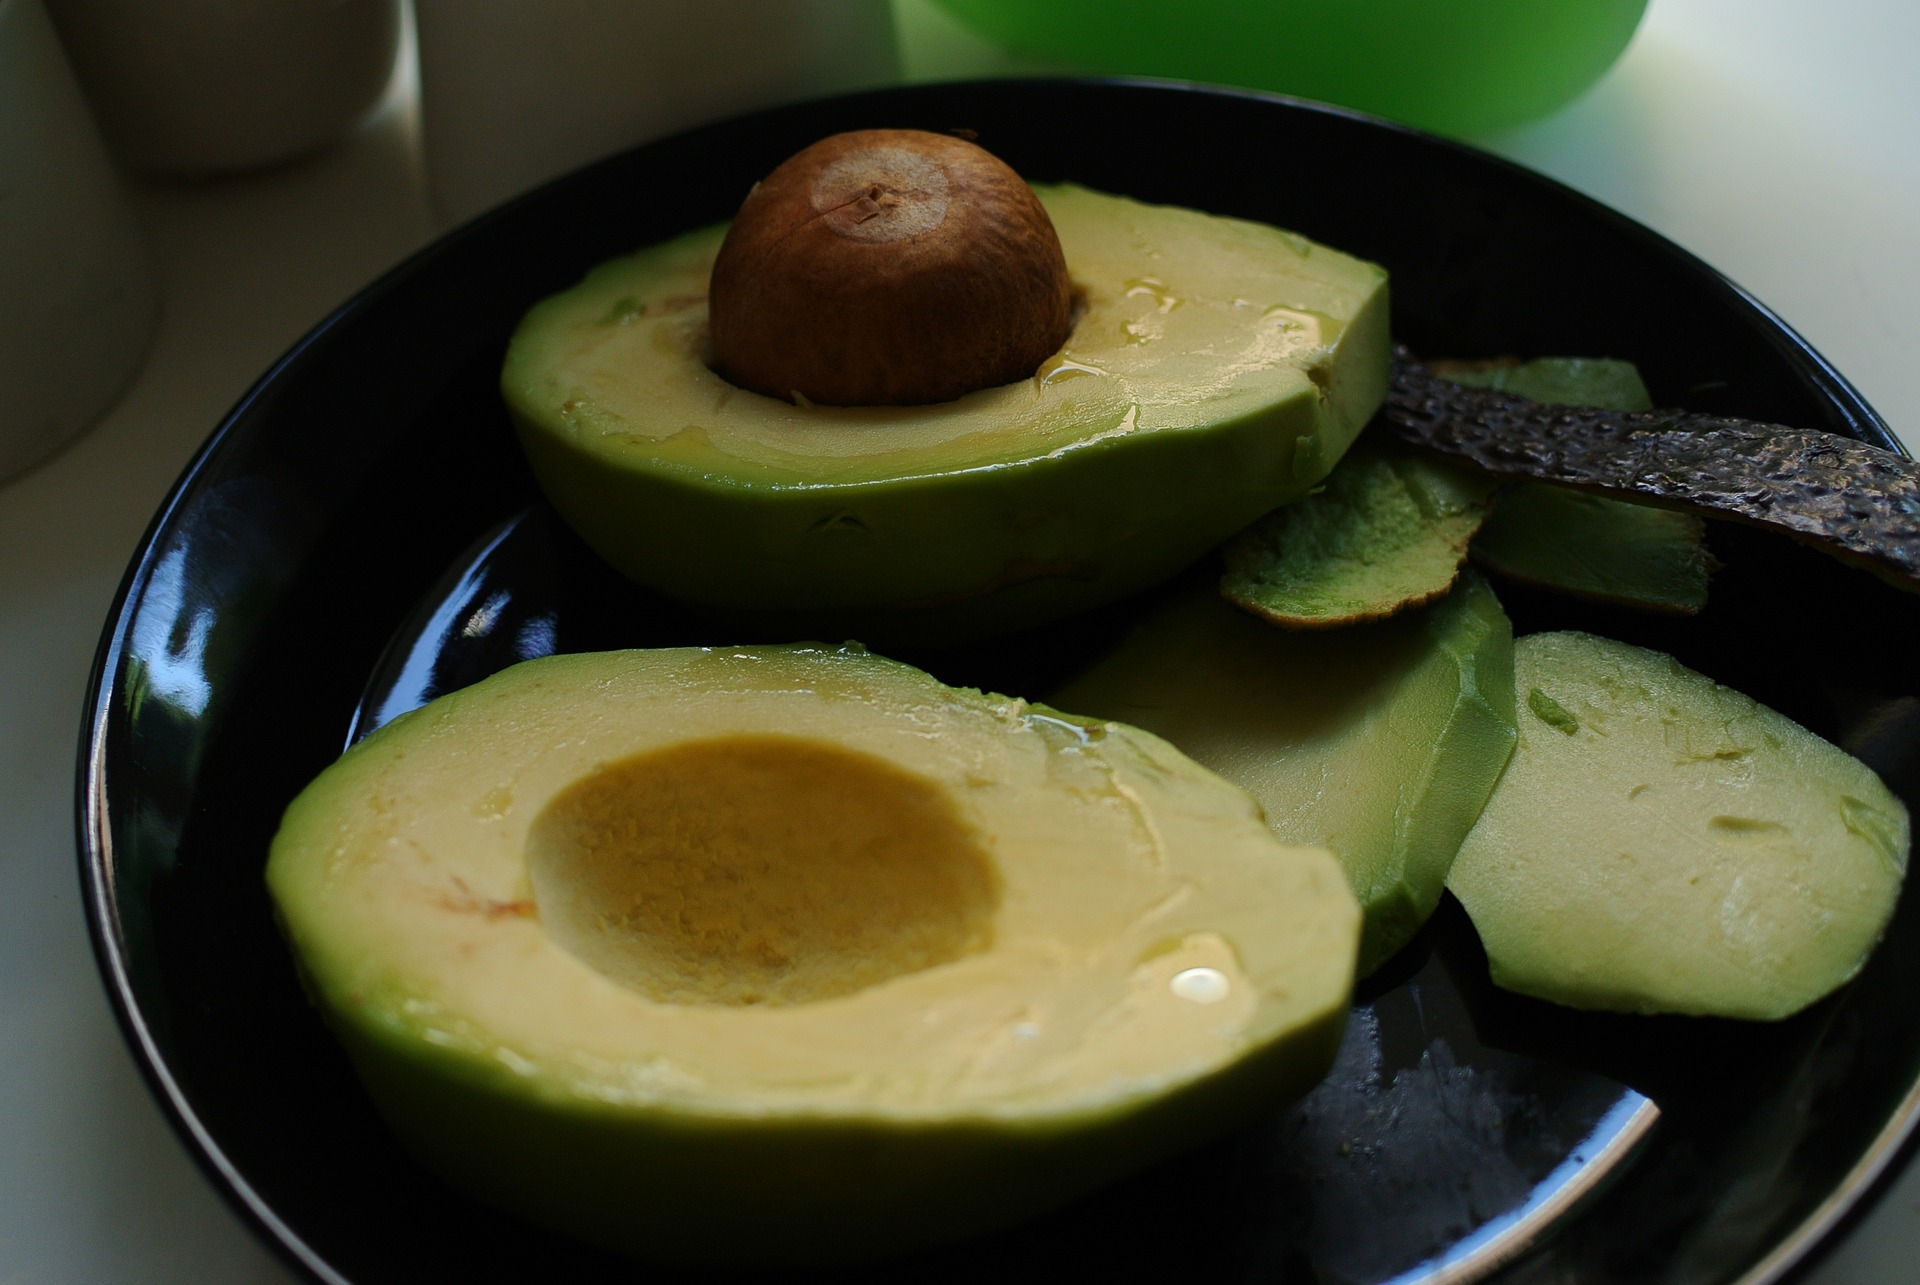 avocat vitamines A B C E